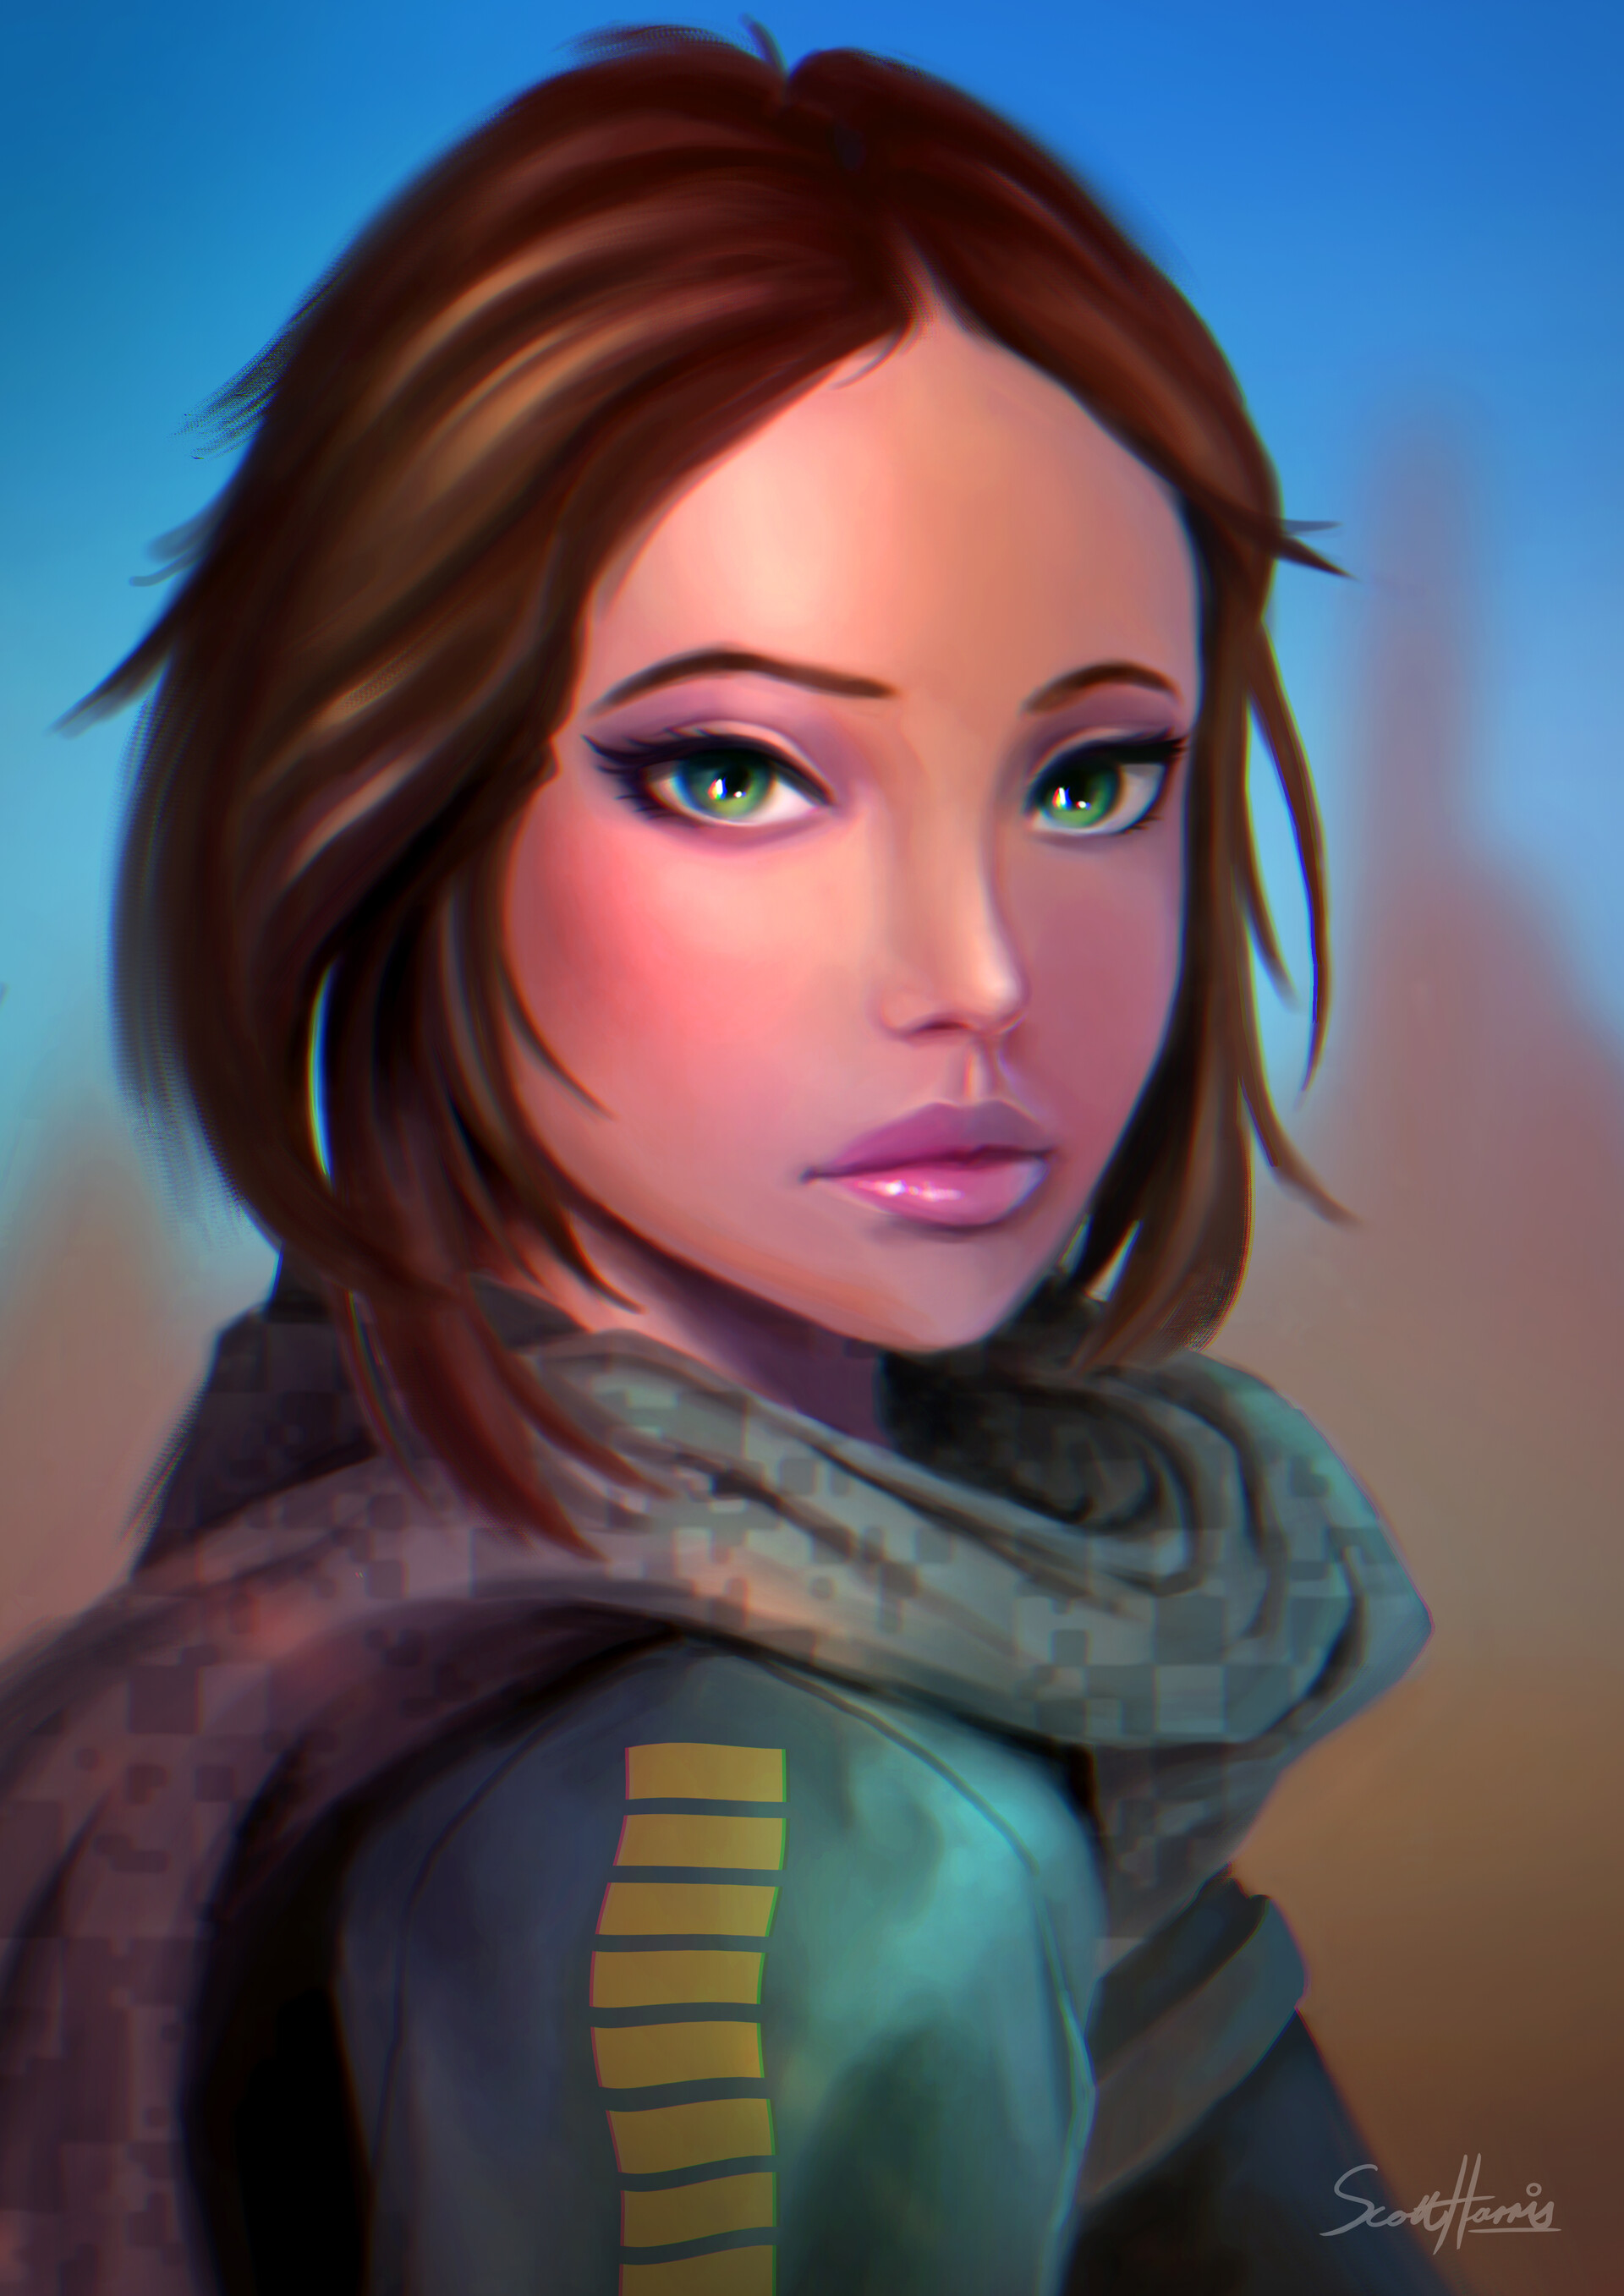 scott-harris-jyn-urso-true-finalv2.jpg